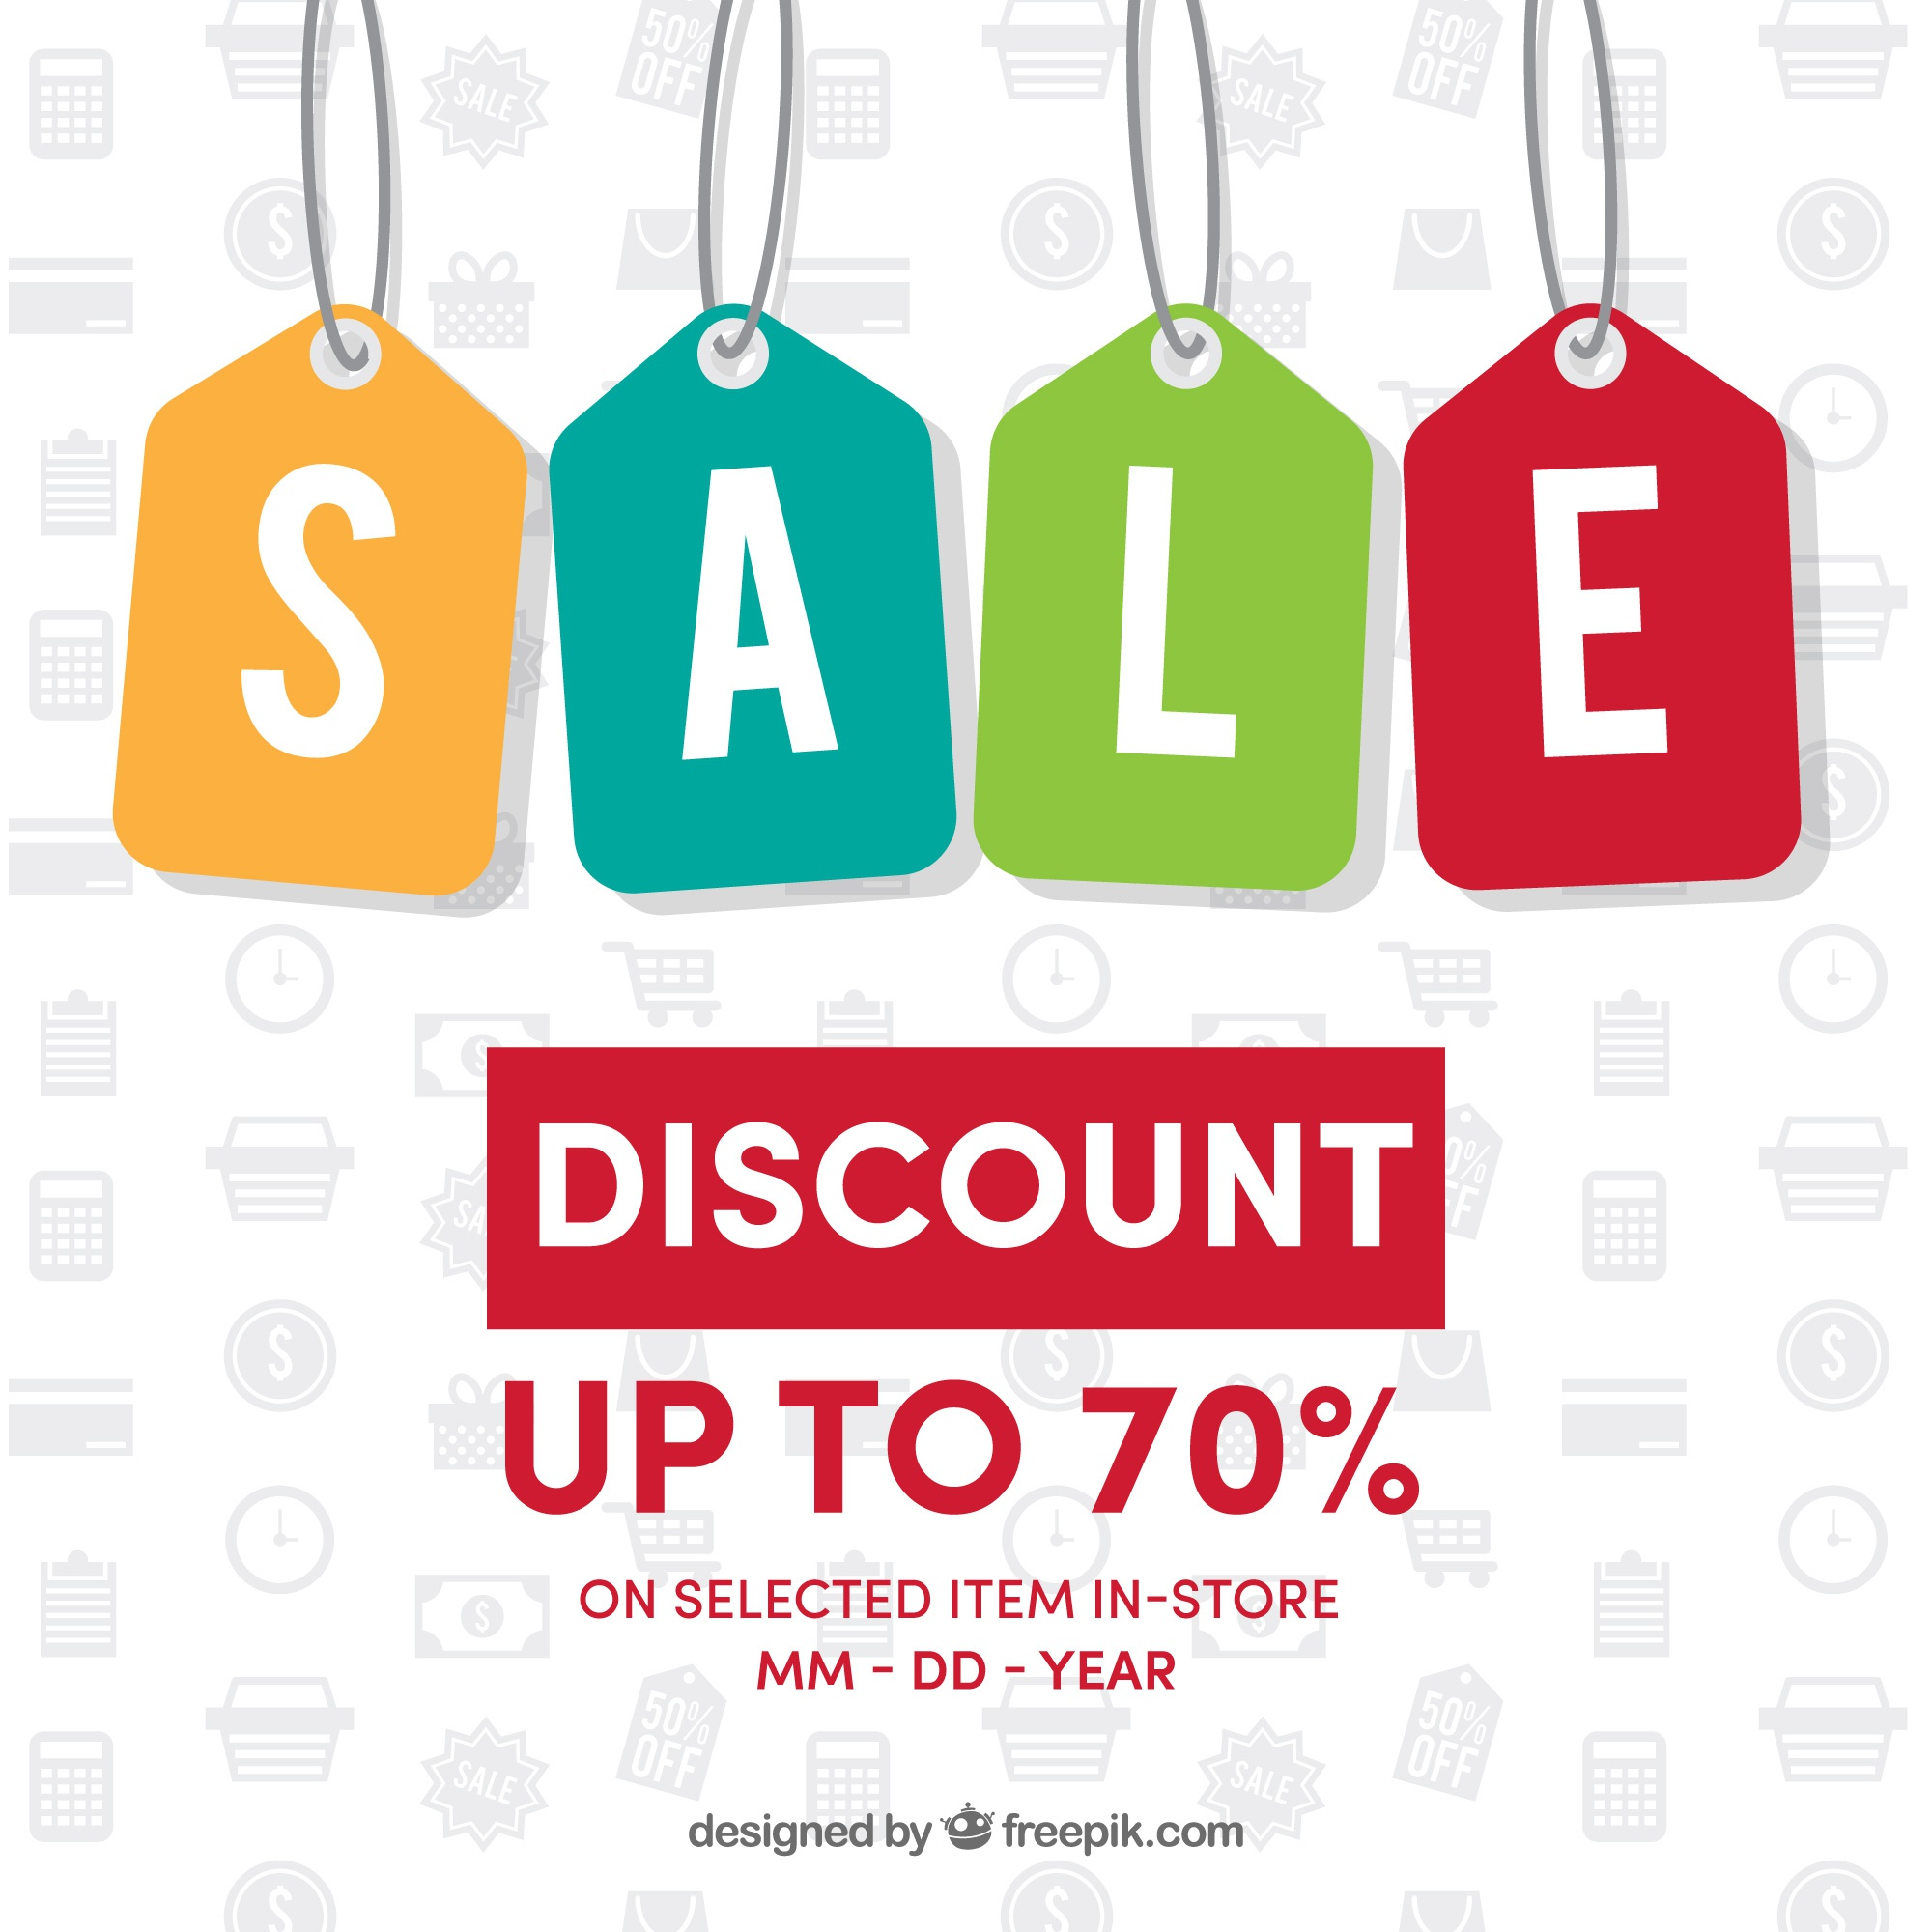 Background of colorful sale labels